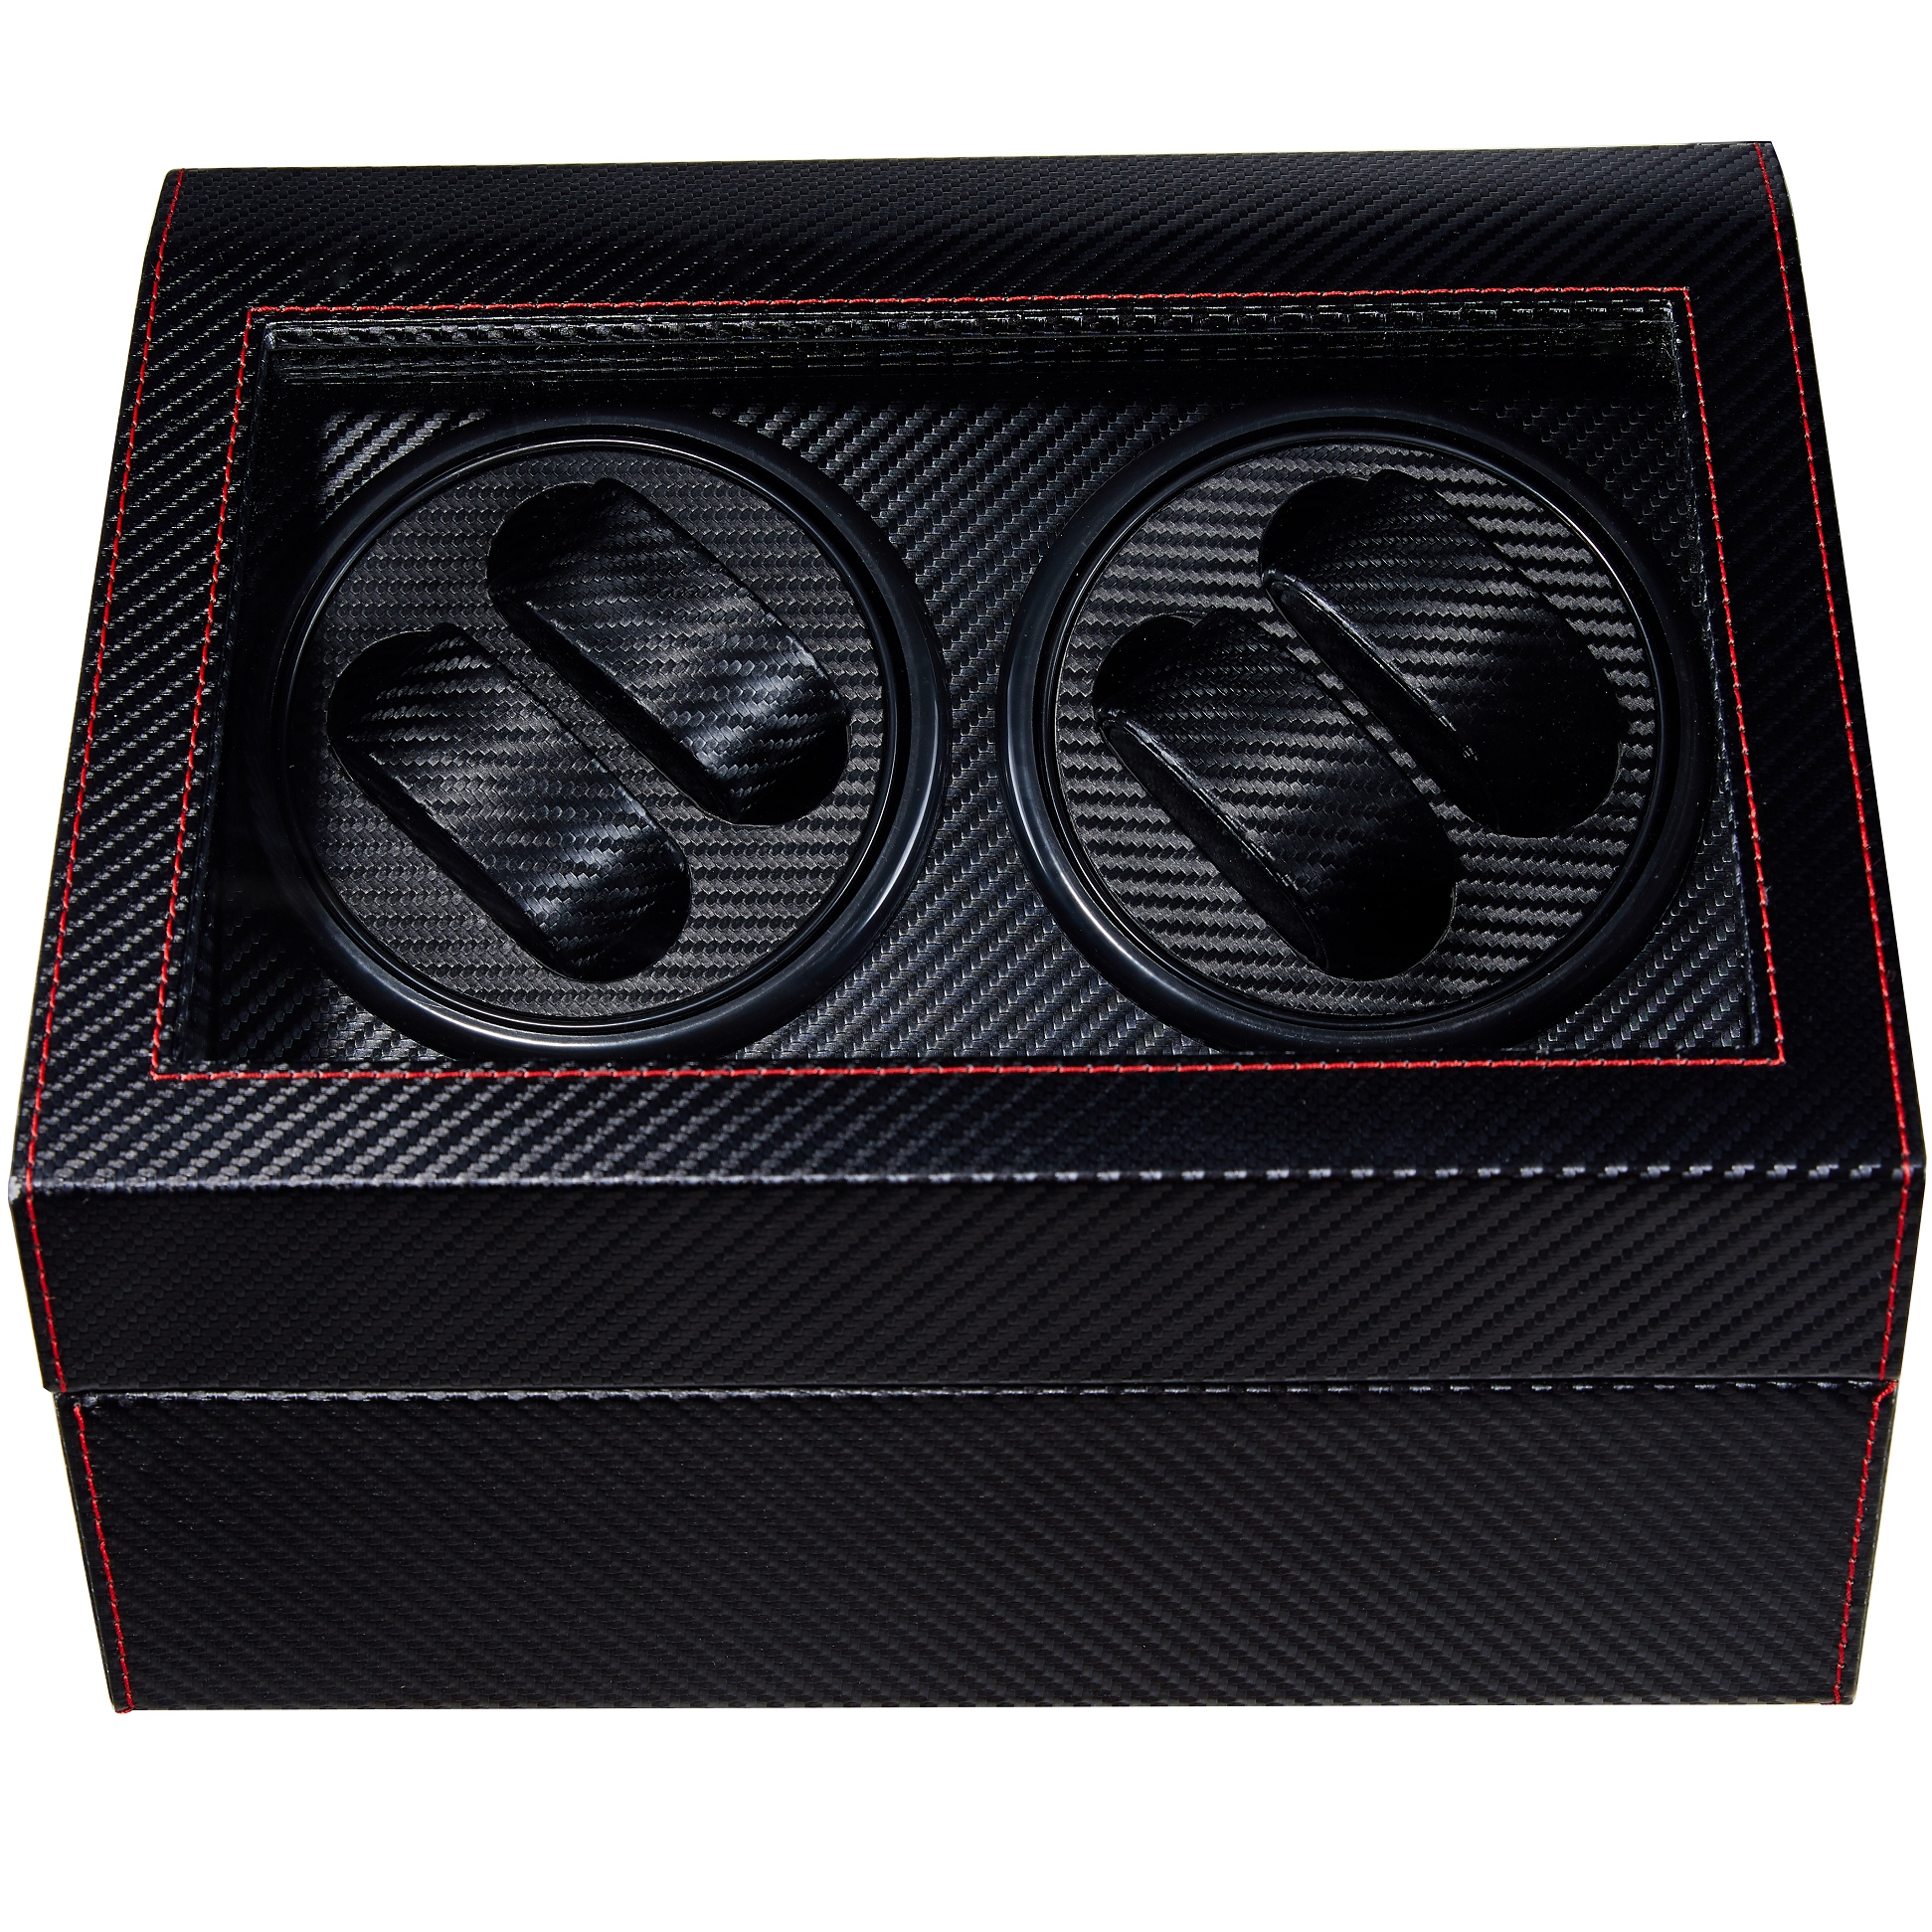 Black Stripe Automatic Watch Winder Box PU Leather Watch Winding Box Collection Display Double Head Silent Motor Box Watchwinder